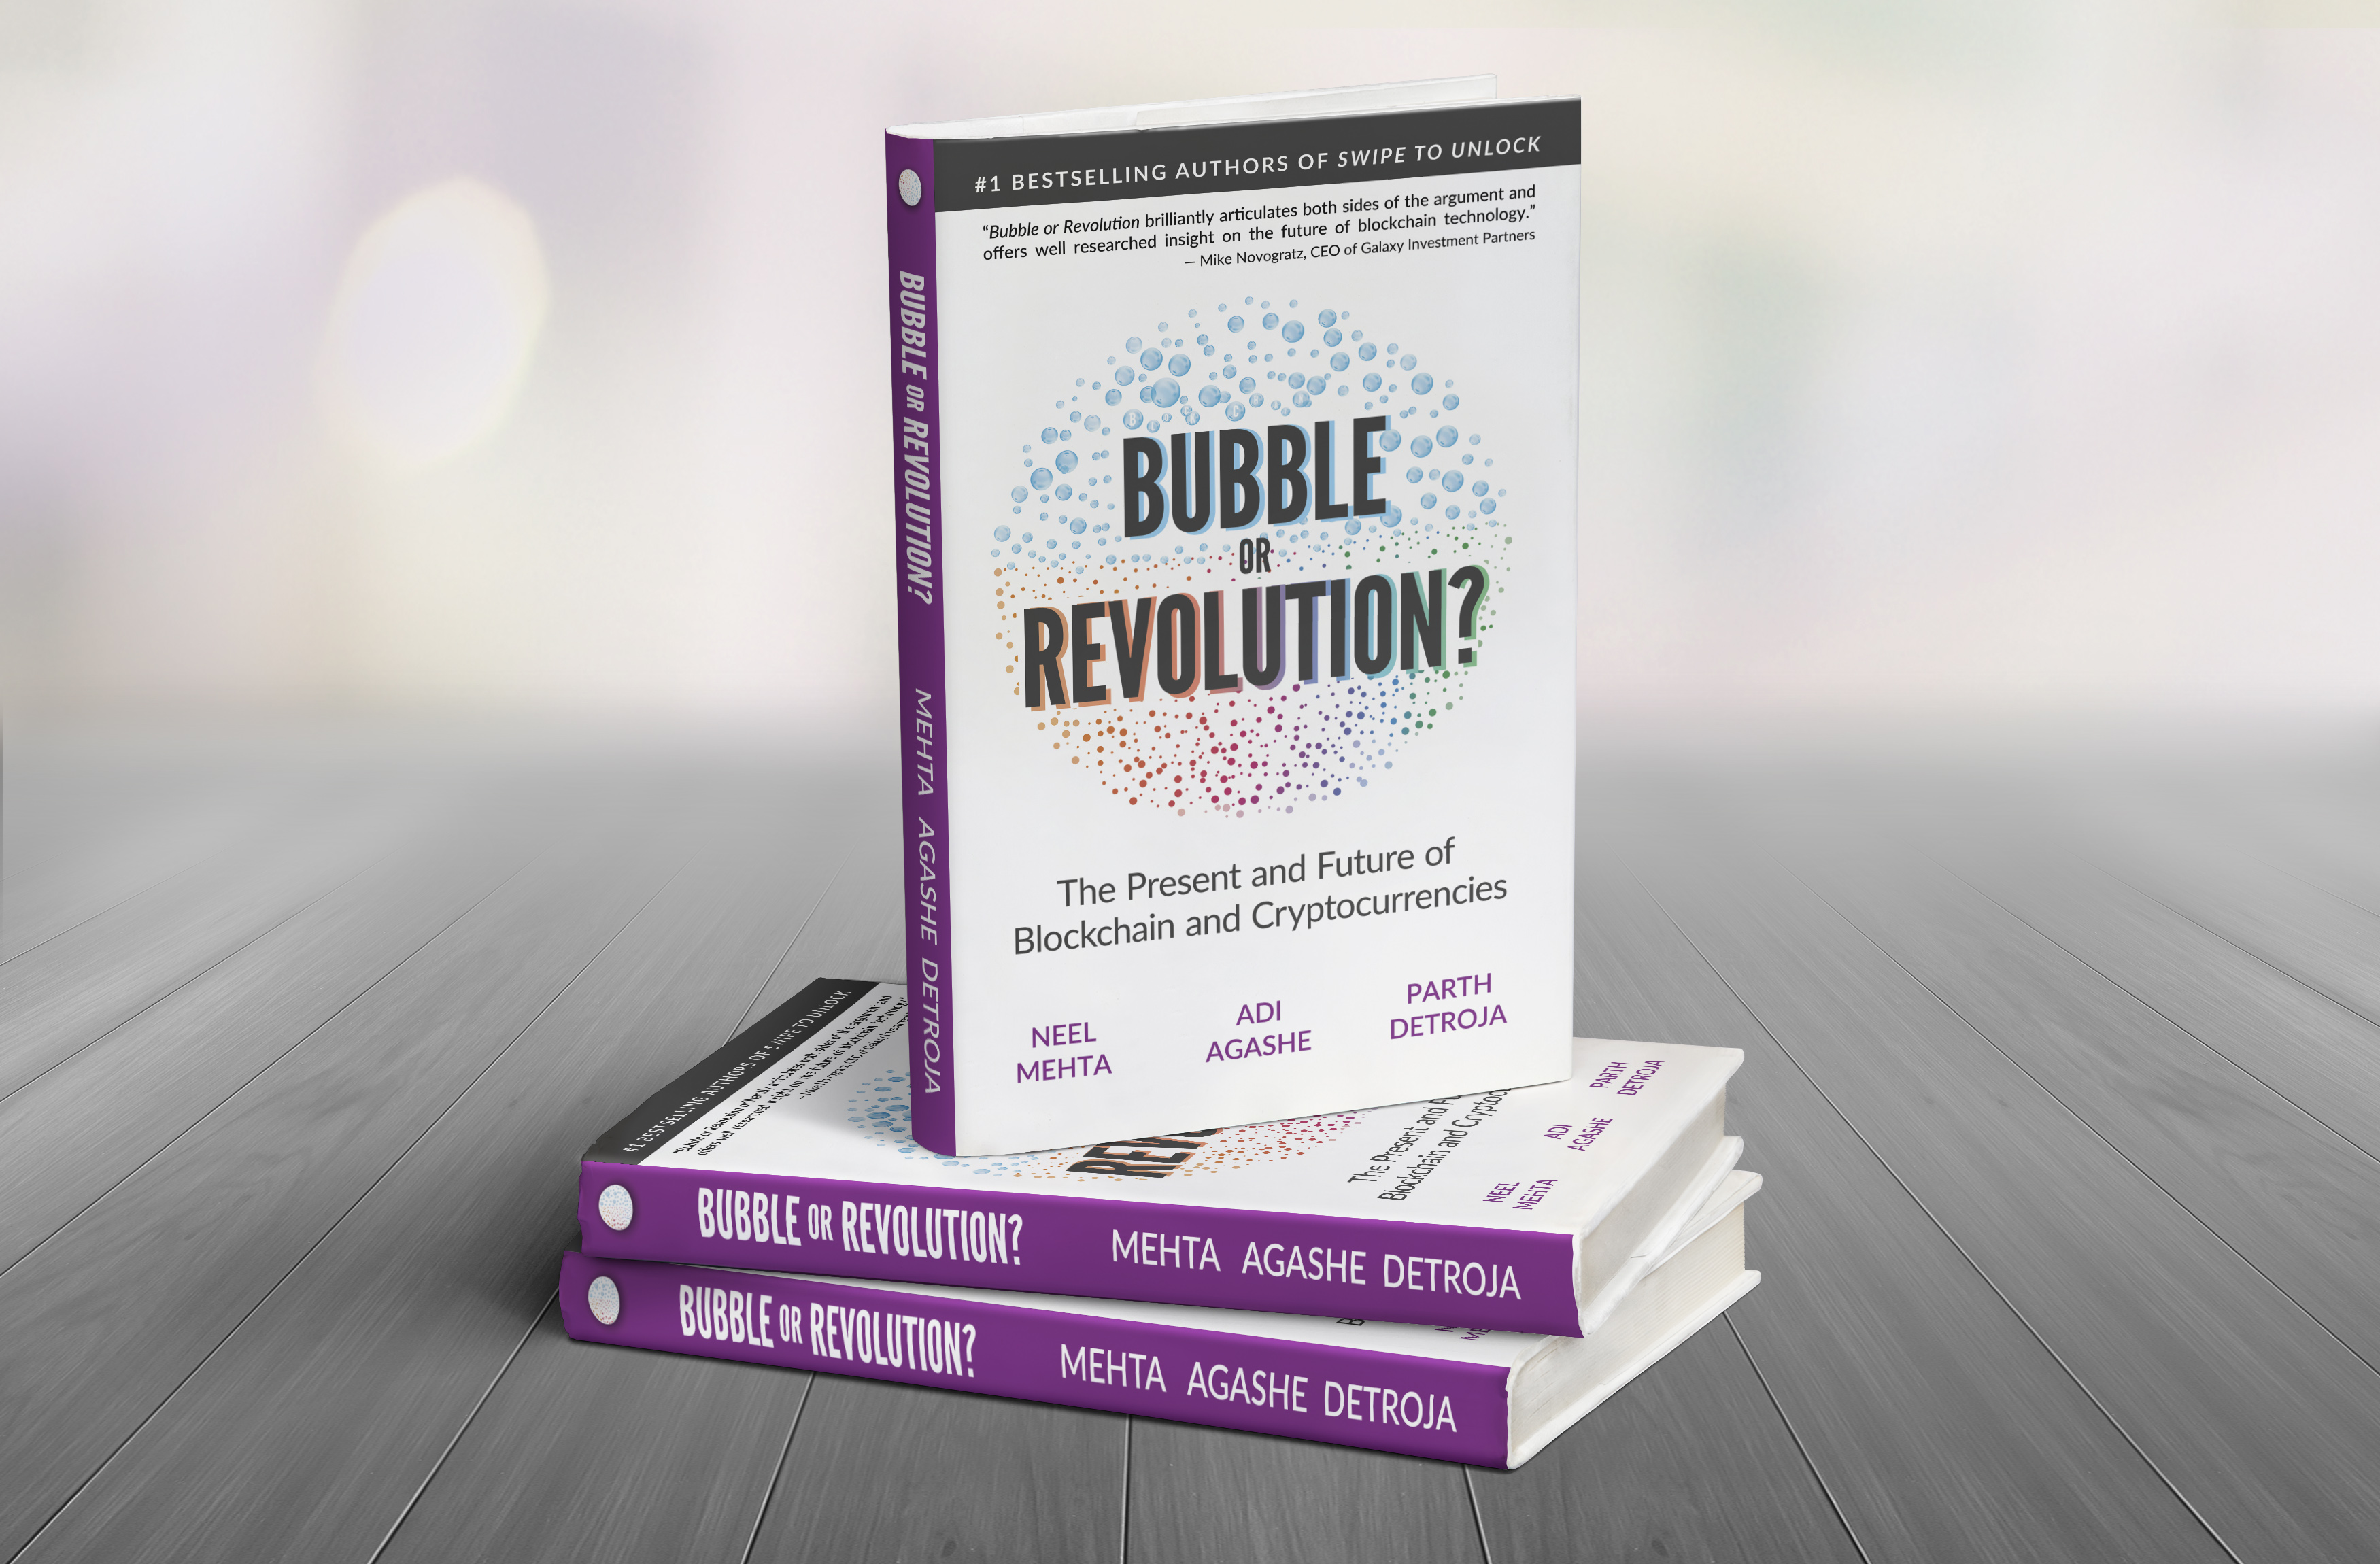 The First and Last Blockchain Book: Bubble or Revolution: The Present and Future of Blockchain and Cryptocurrencies